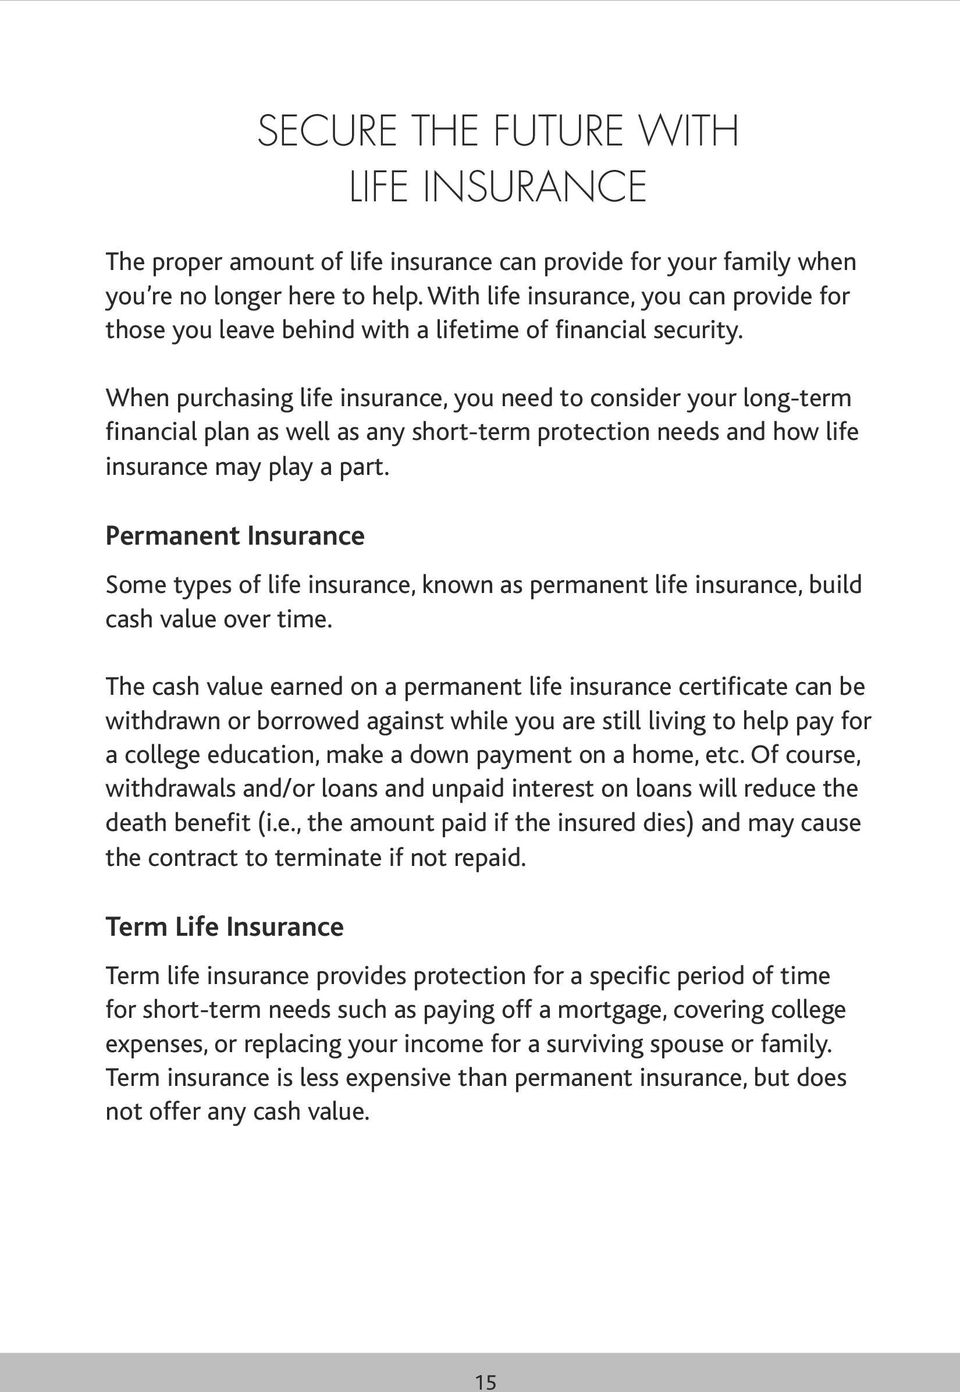 When purchasing life insurance, you need to consider your long-term financial plan as well as any short-term protection needs and how life insurance may play a part.